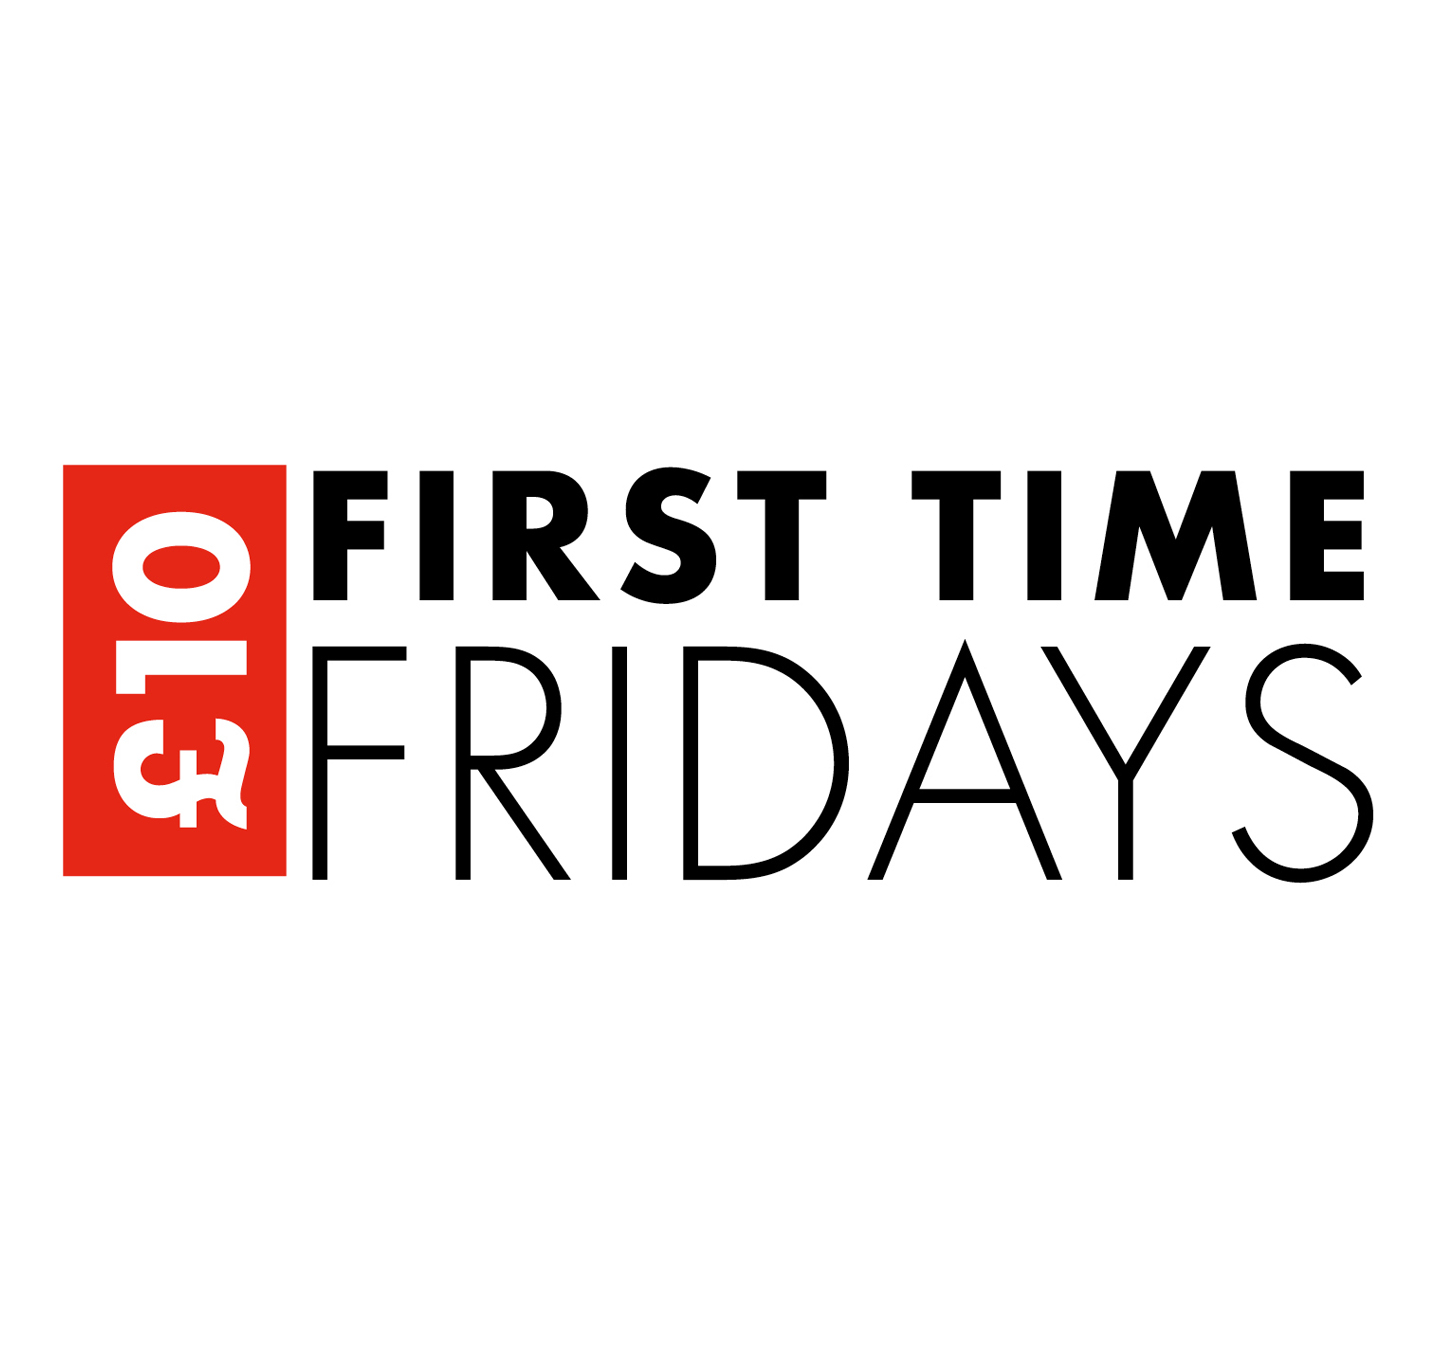 First Time Fridays